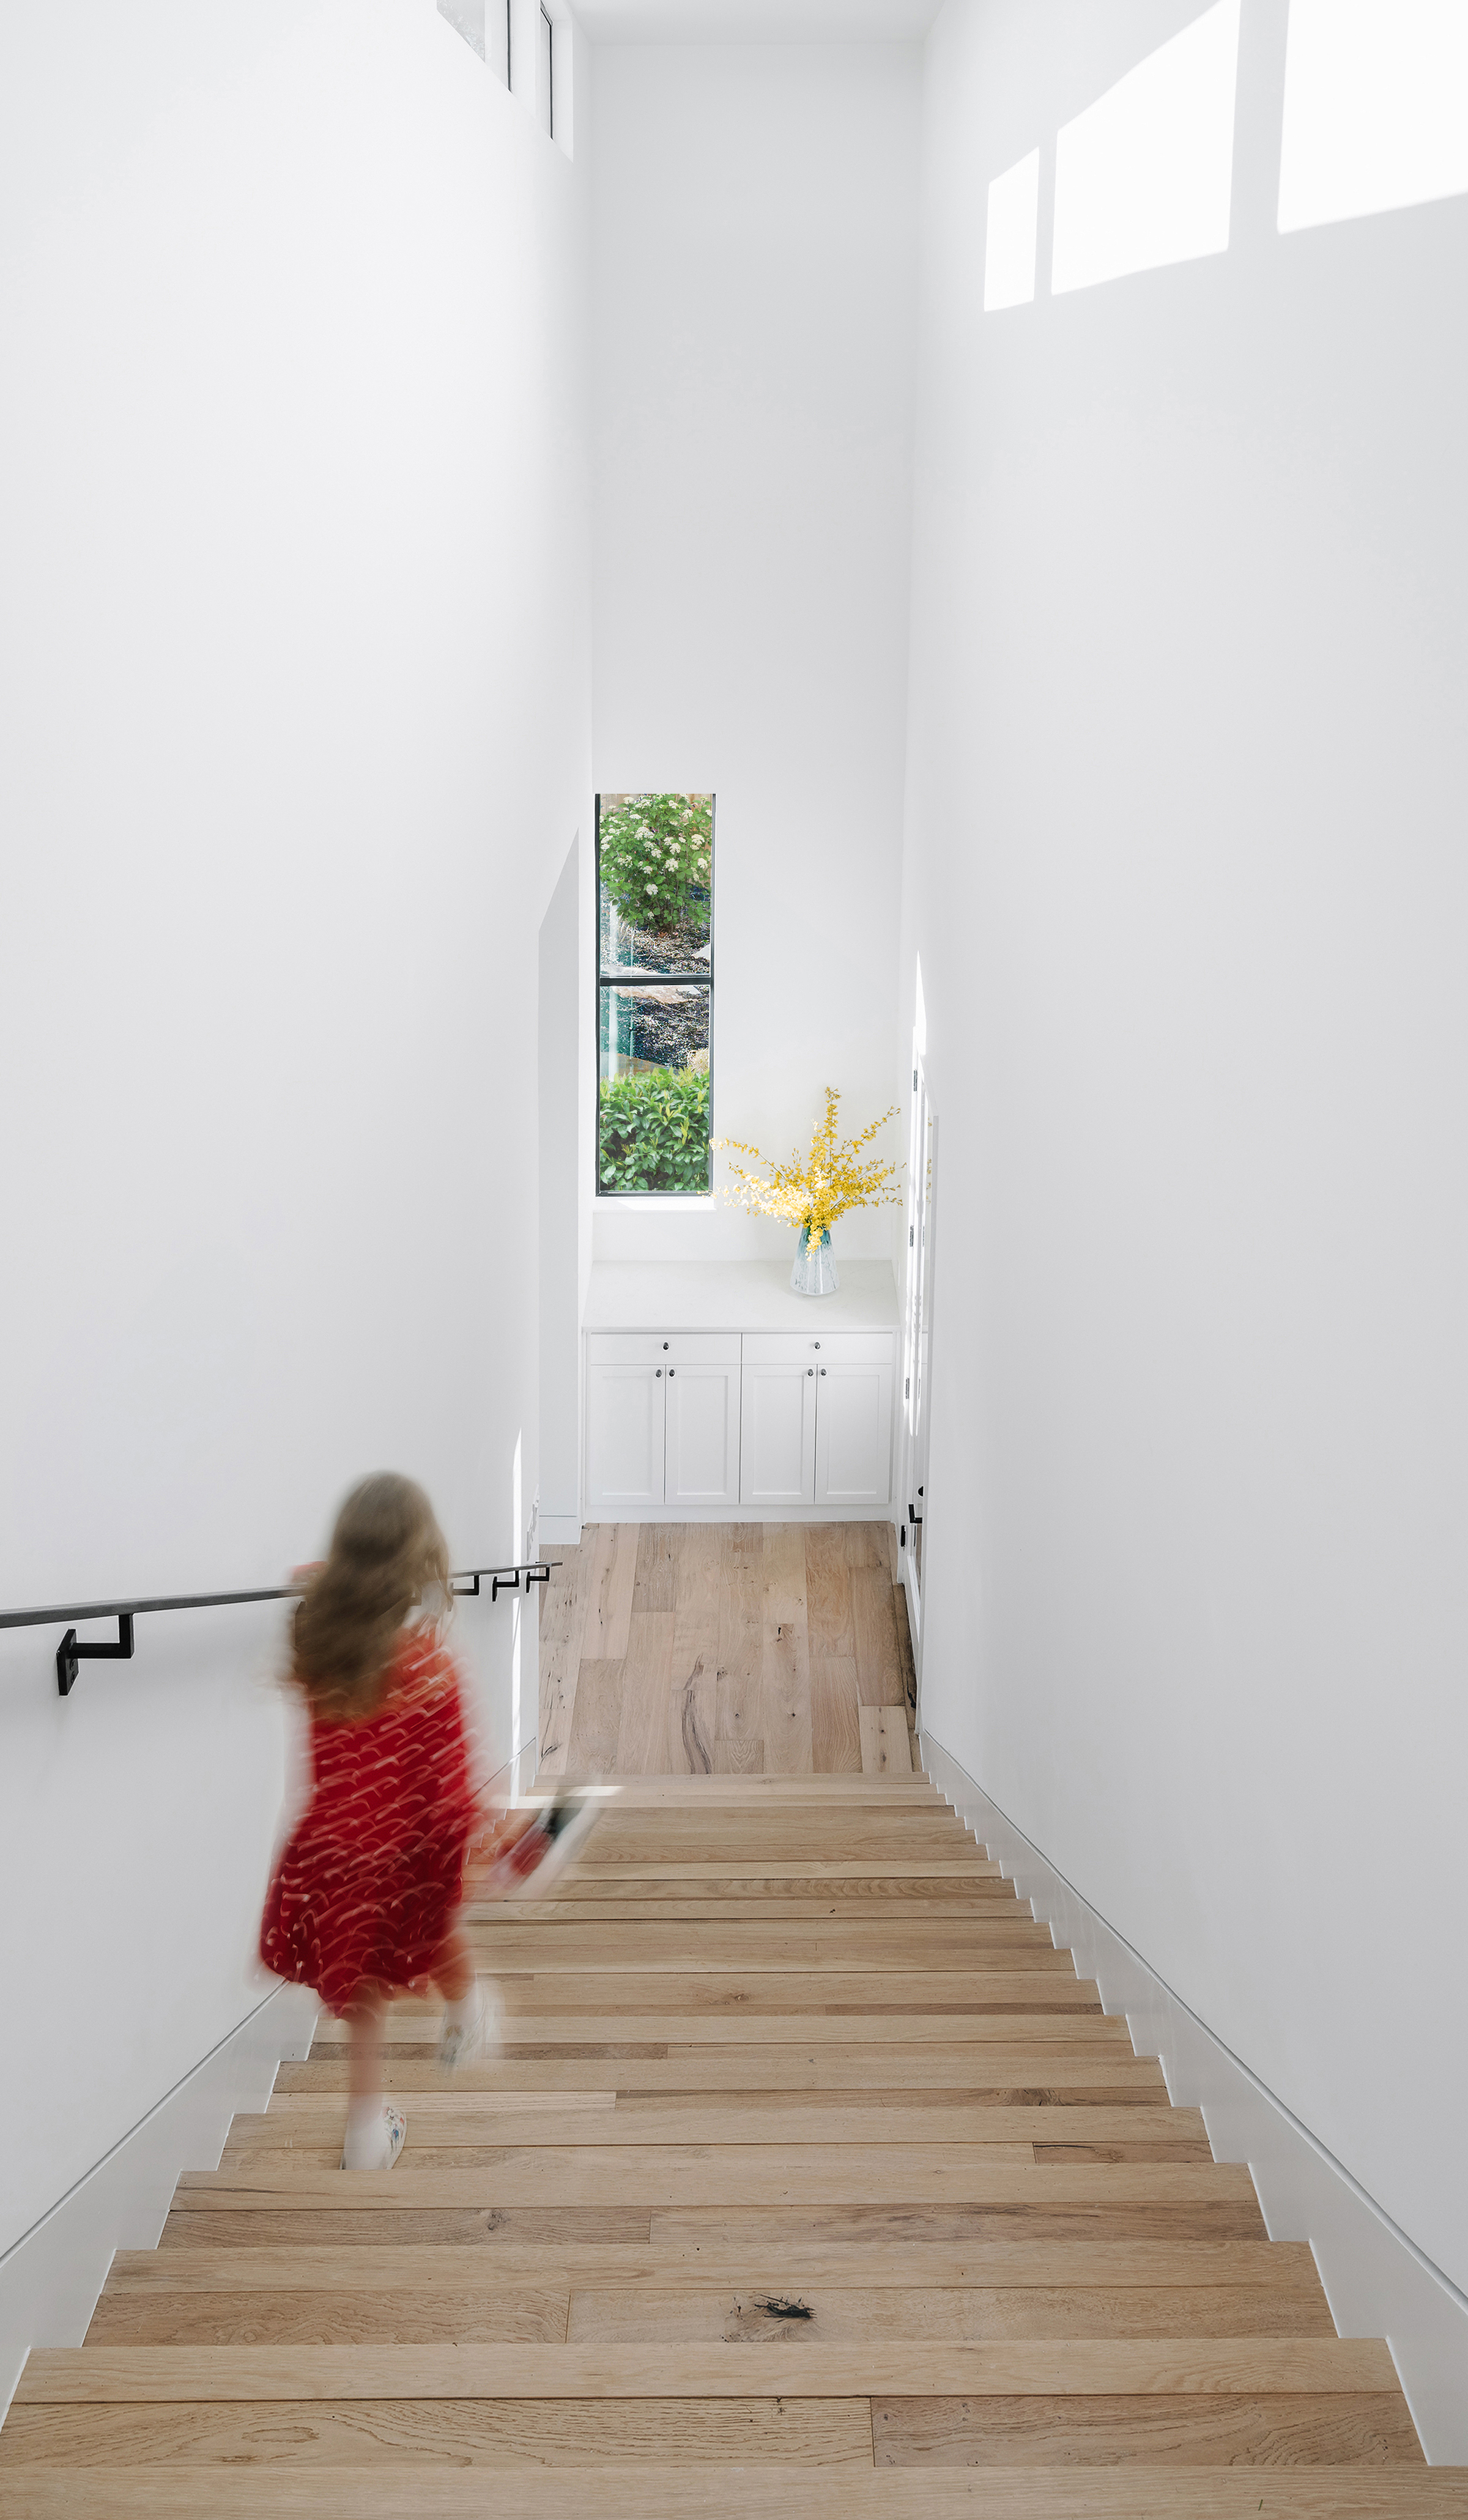 16 Allotted Space House by Matt Fajkus Architecture. Photo by Chase Daniel.jpg